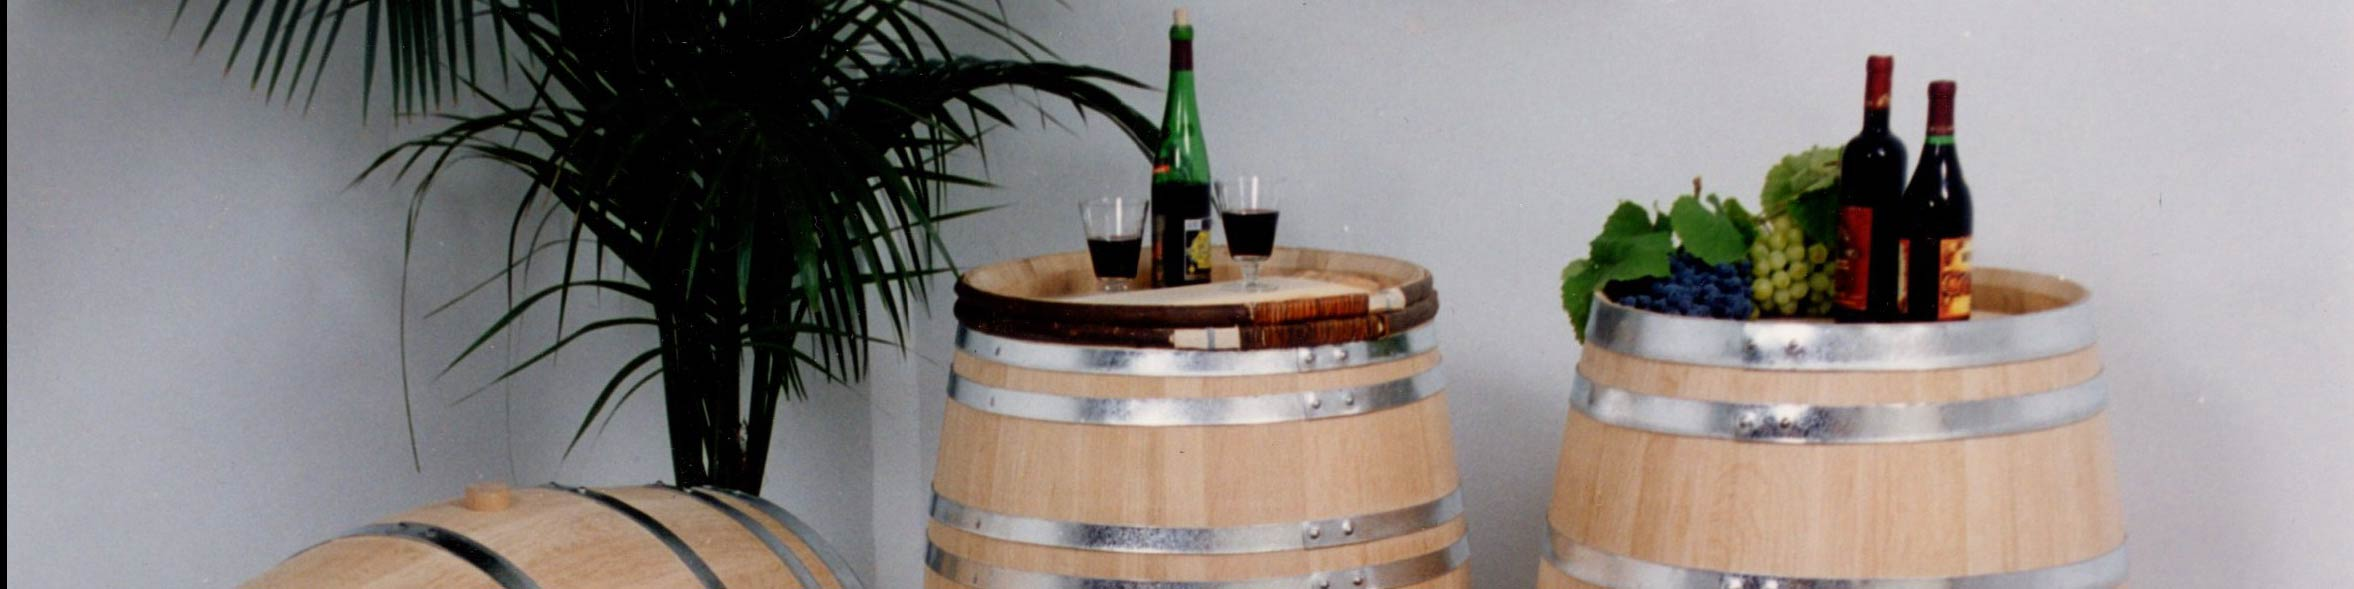 The wine trail offers products in the local area.